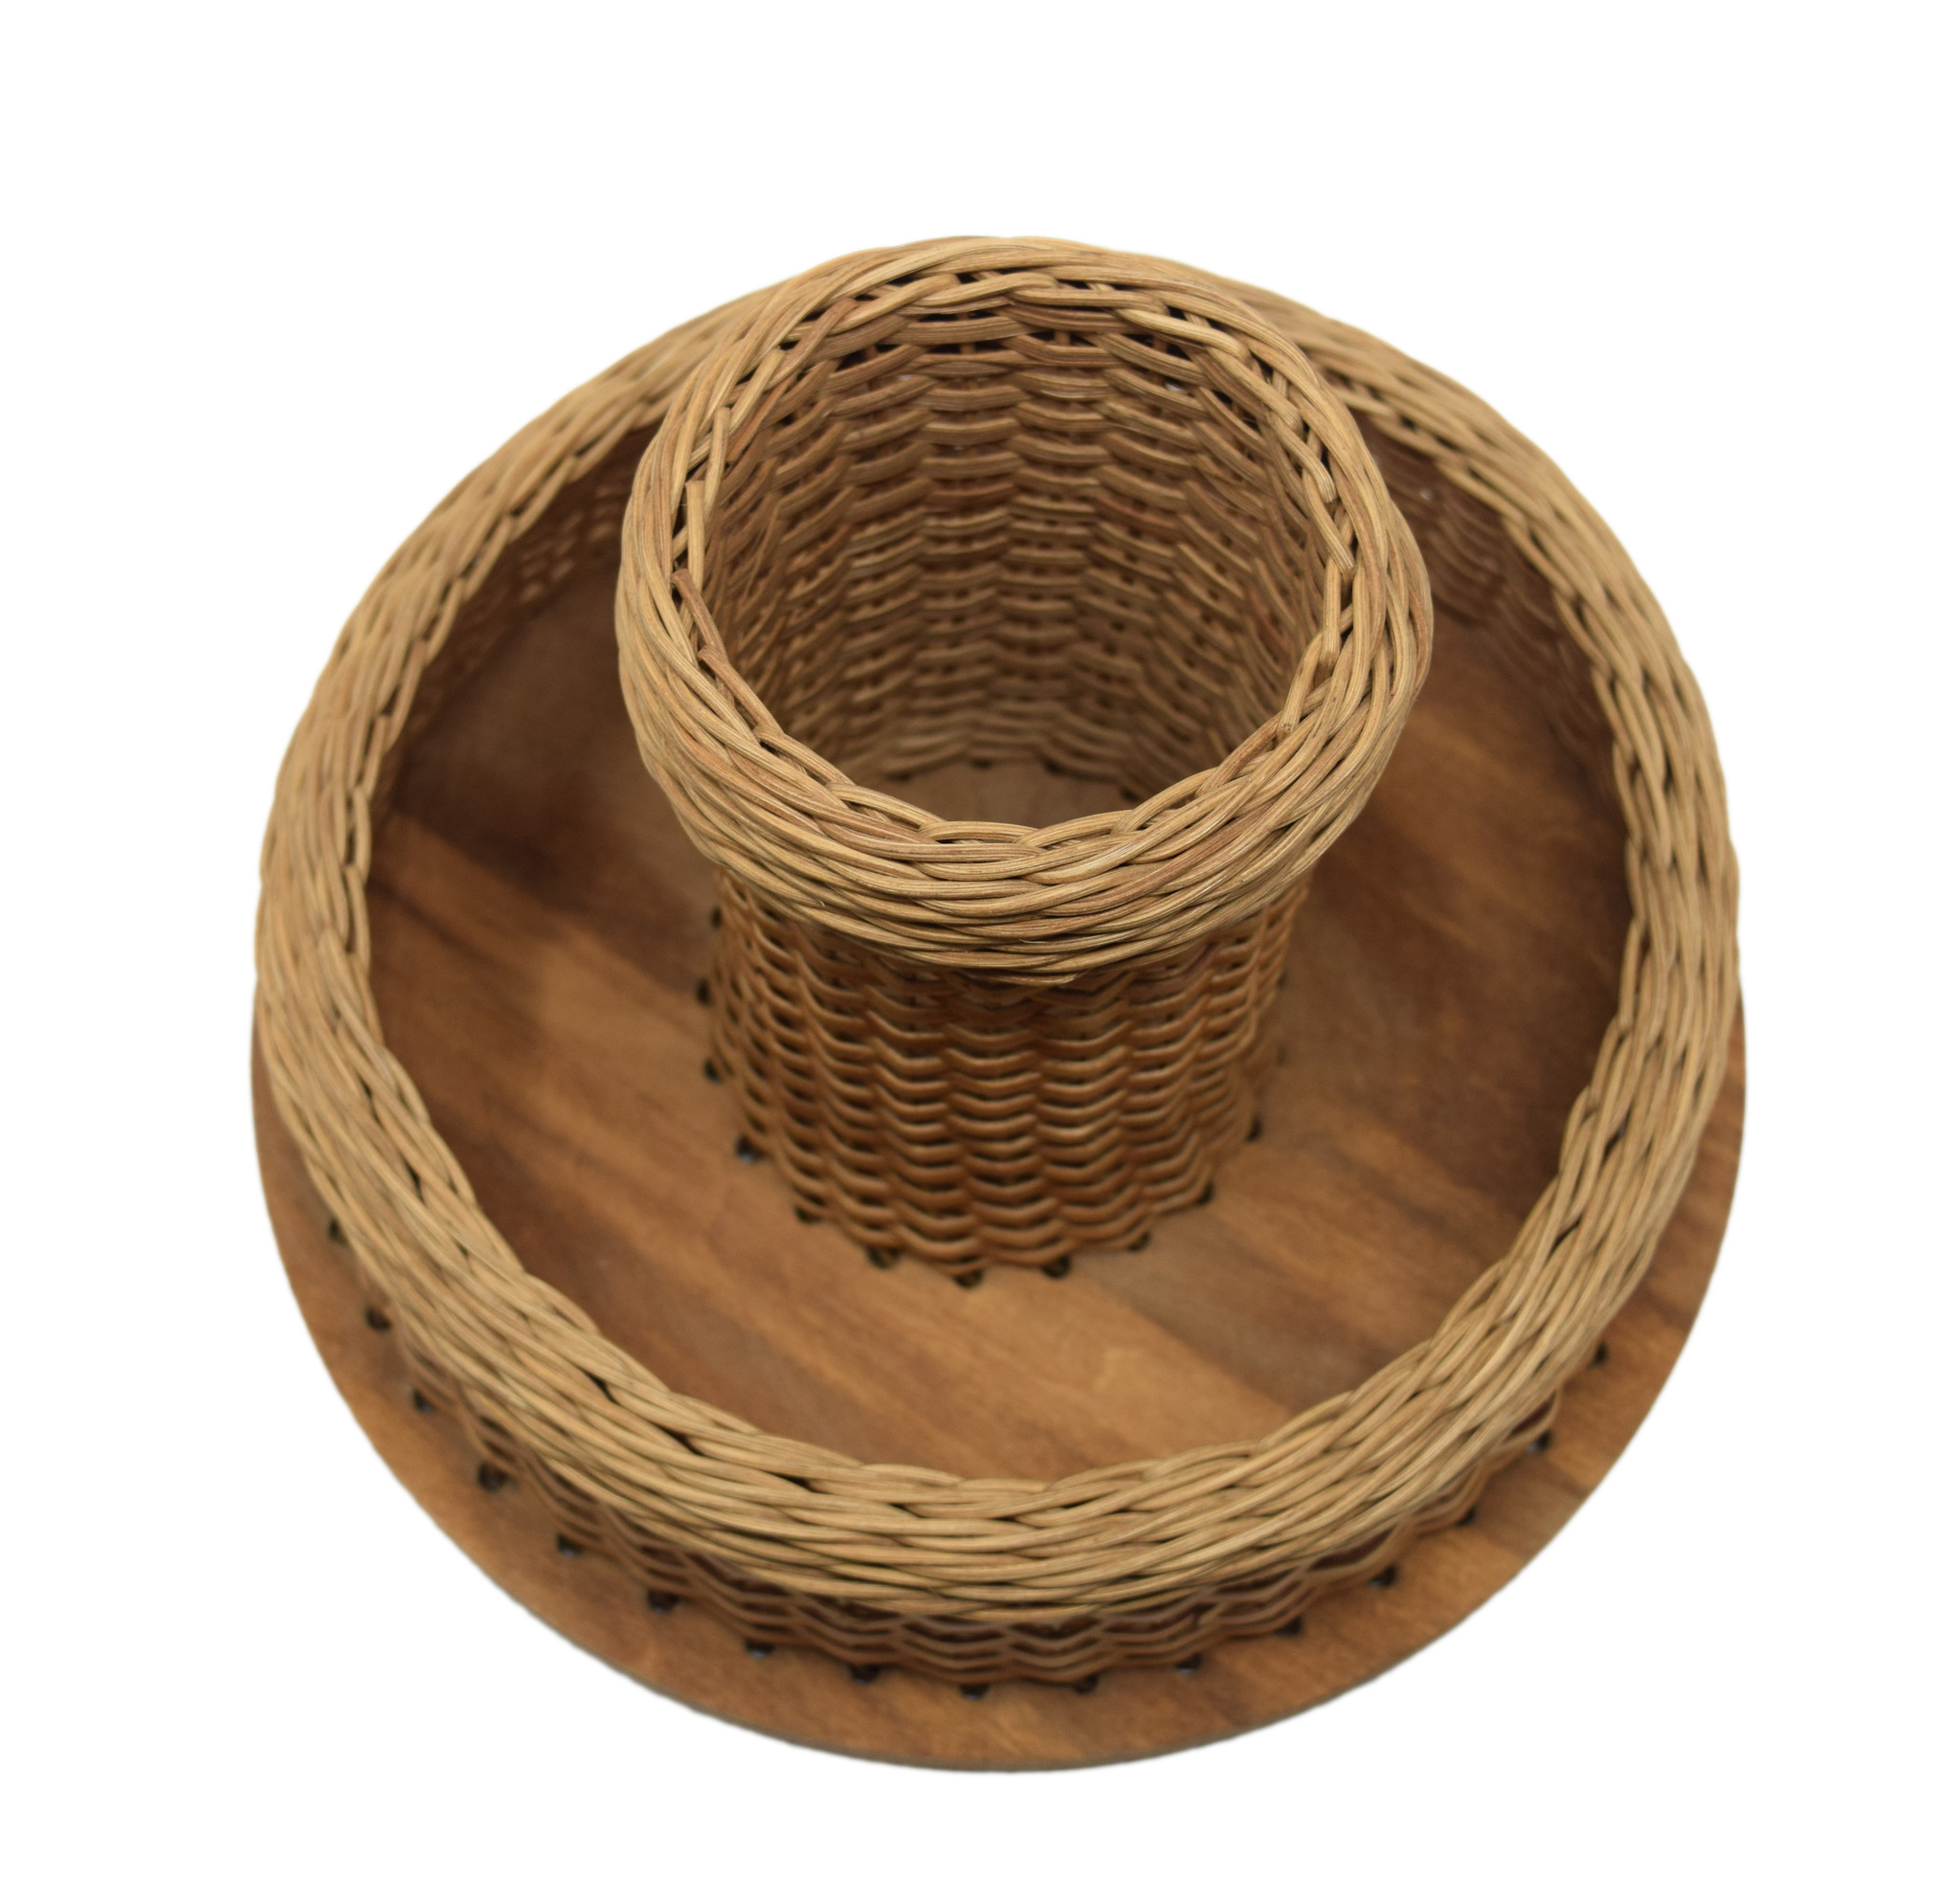 Spices and Spoons Basket-2